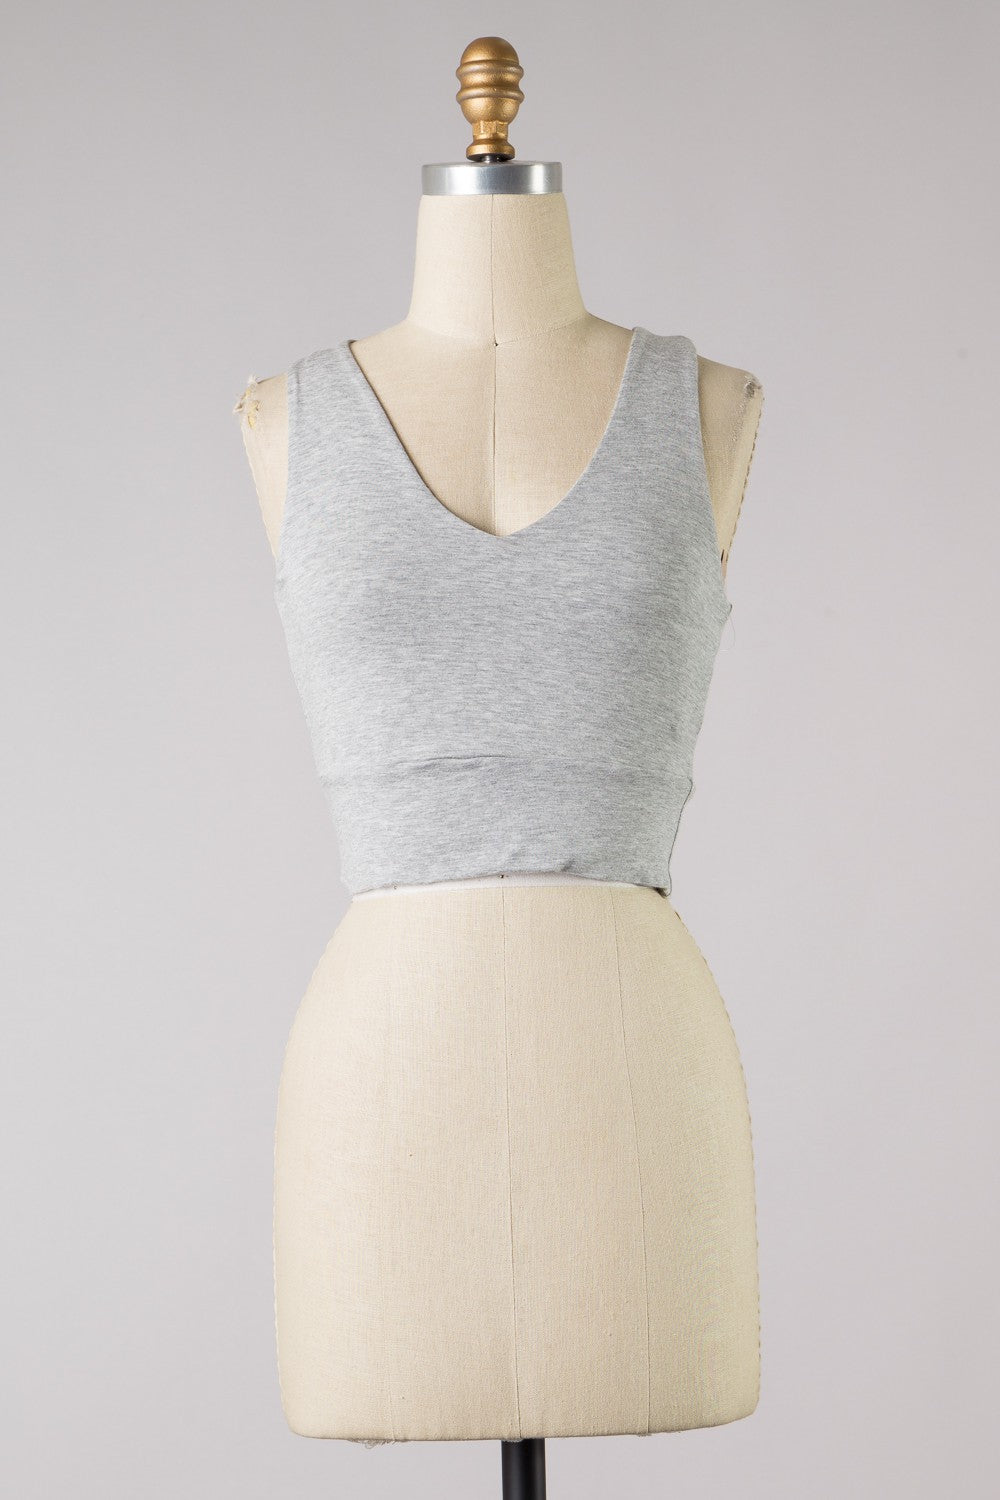 Thick Strap VNeck Crop (Grey)